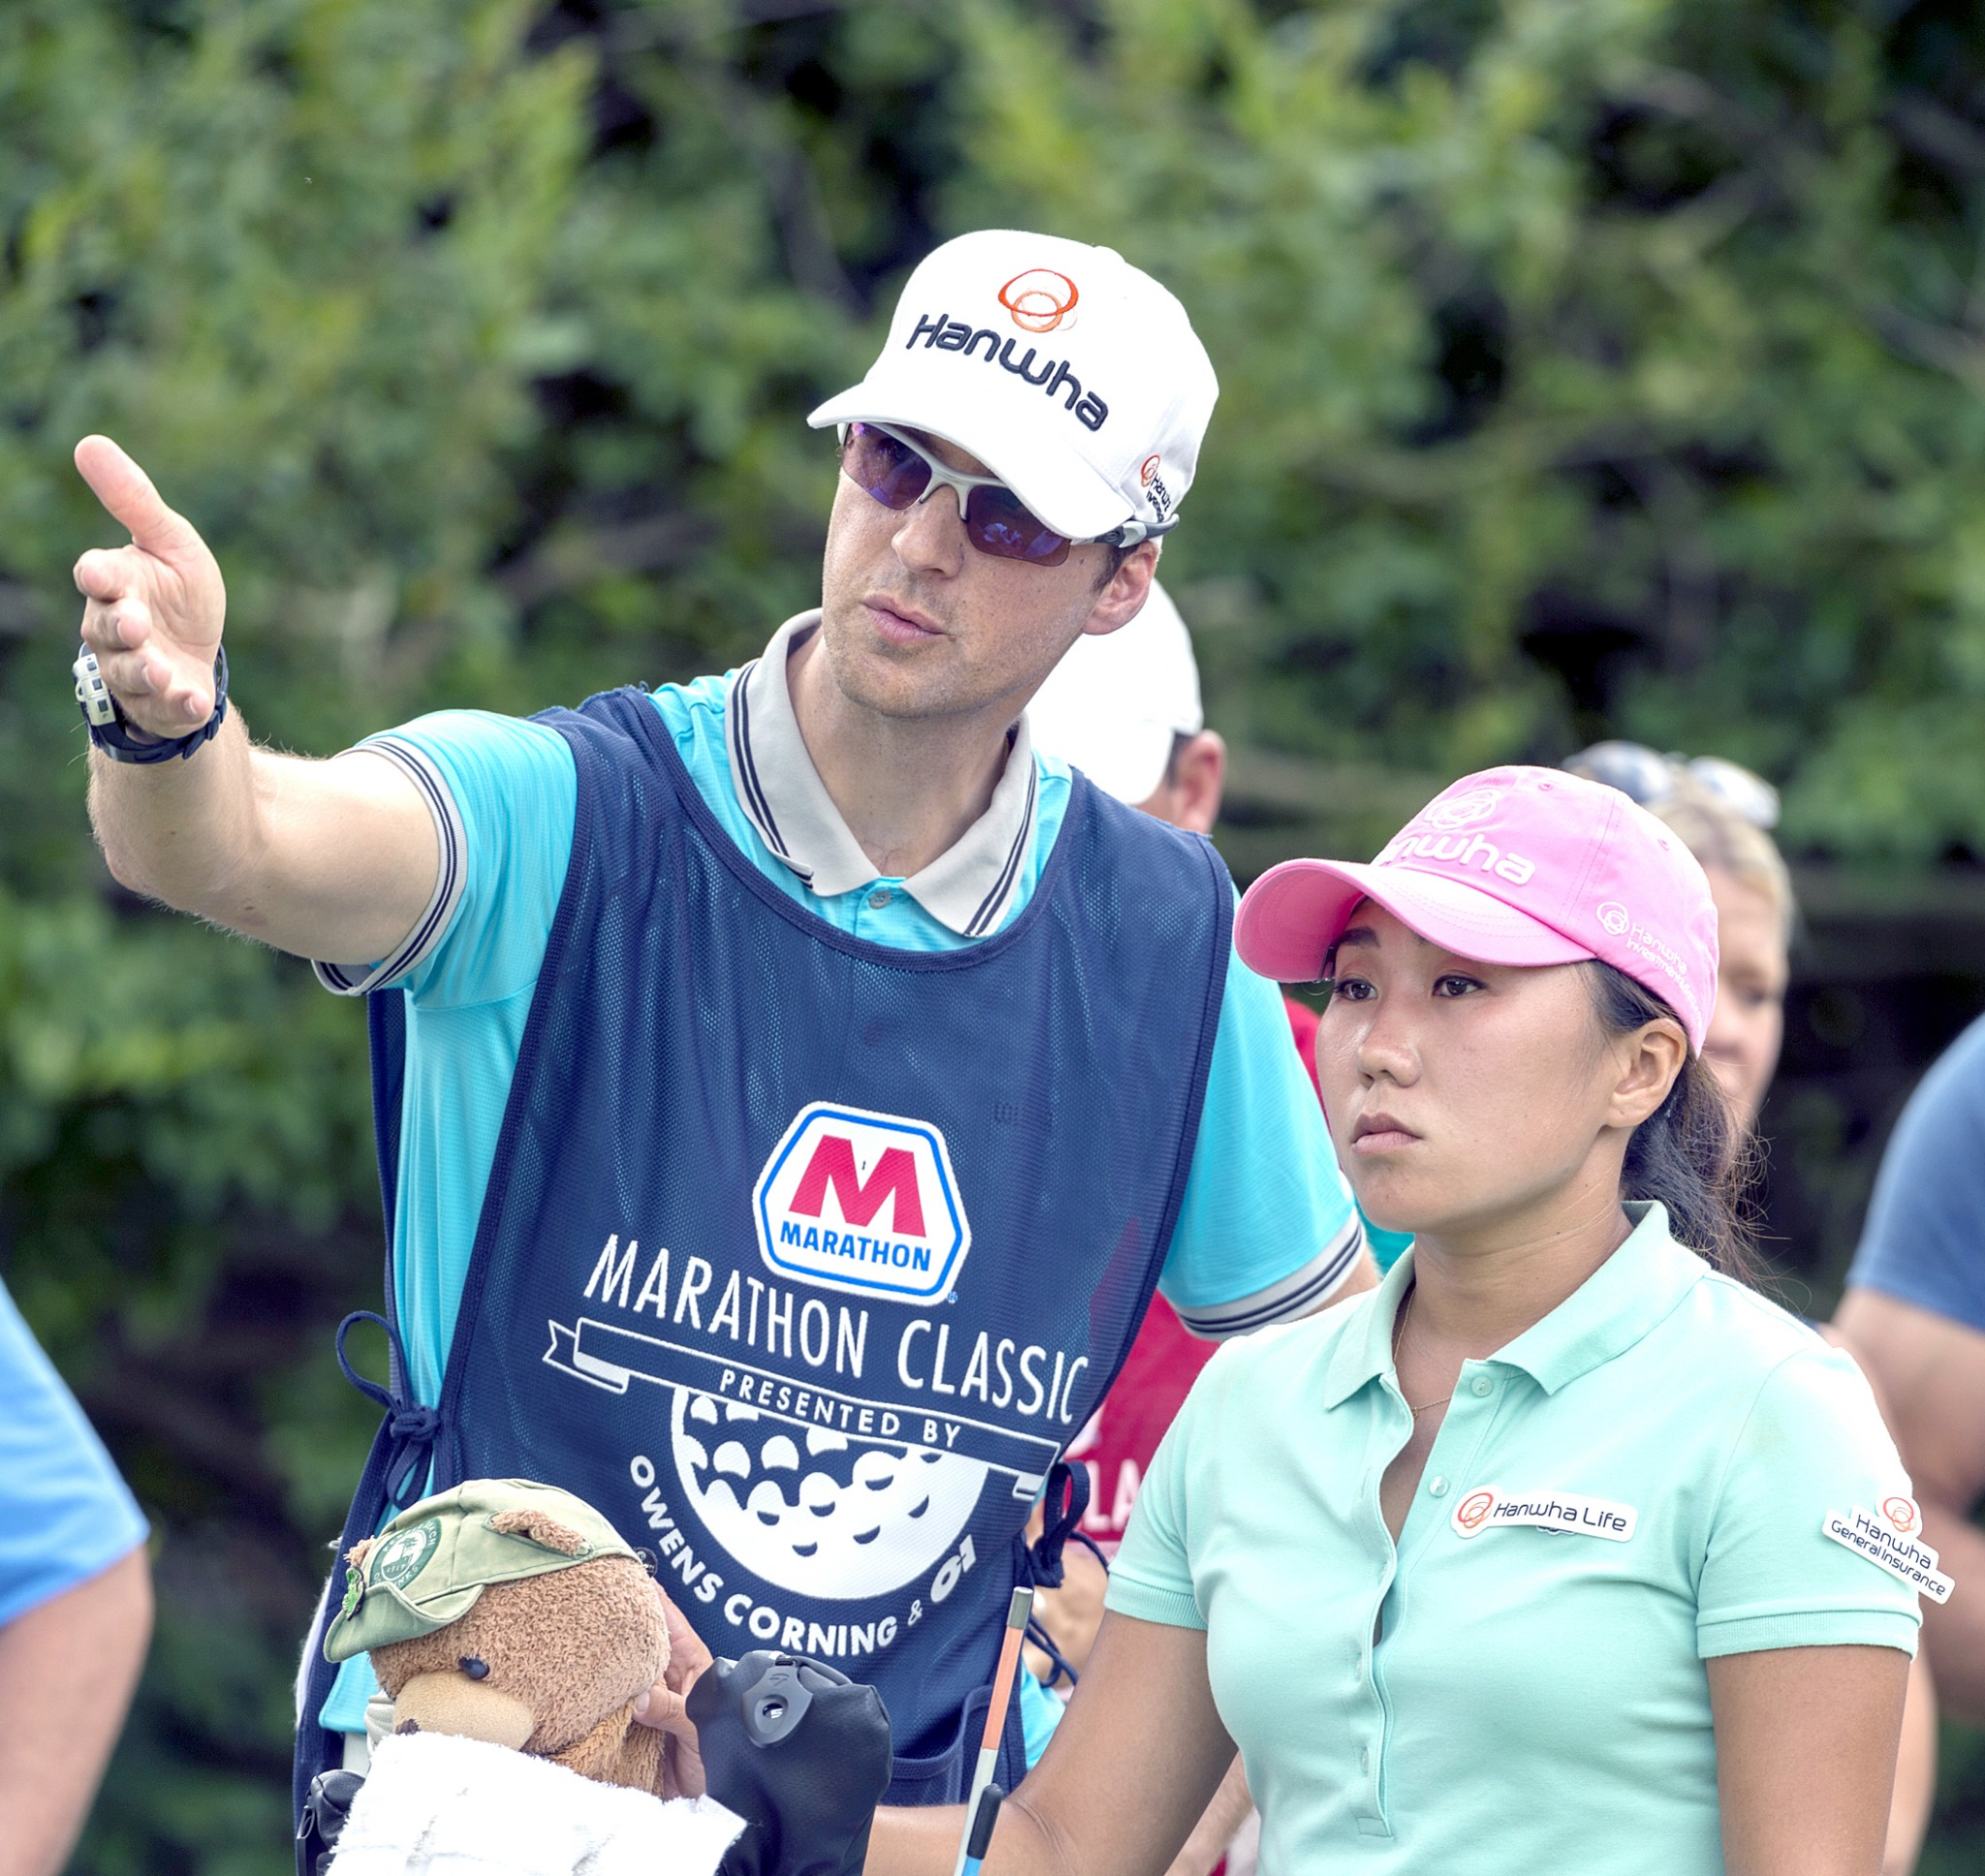 LPGA golfer Ju Kyung Kim confers with her caddie during the Marathon Classic at Sylvania's Highland Meadows Golf Course. (Photo courtesy Marathon Classic)